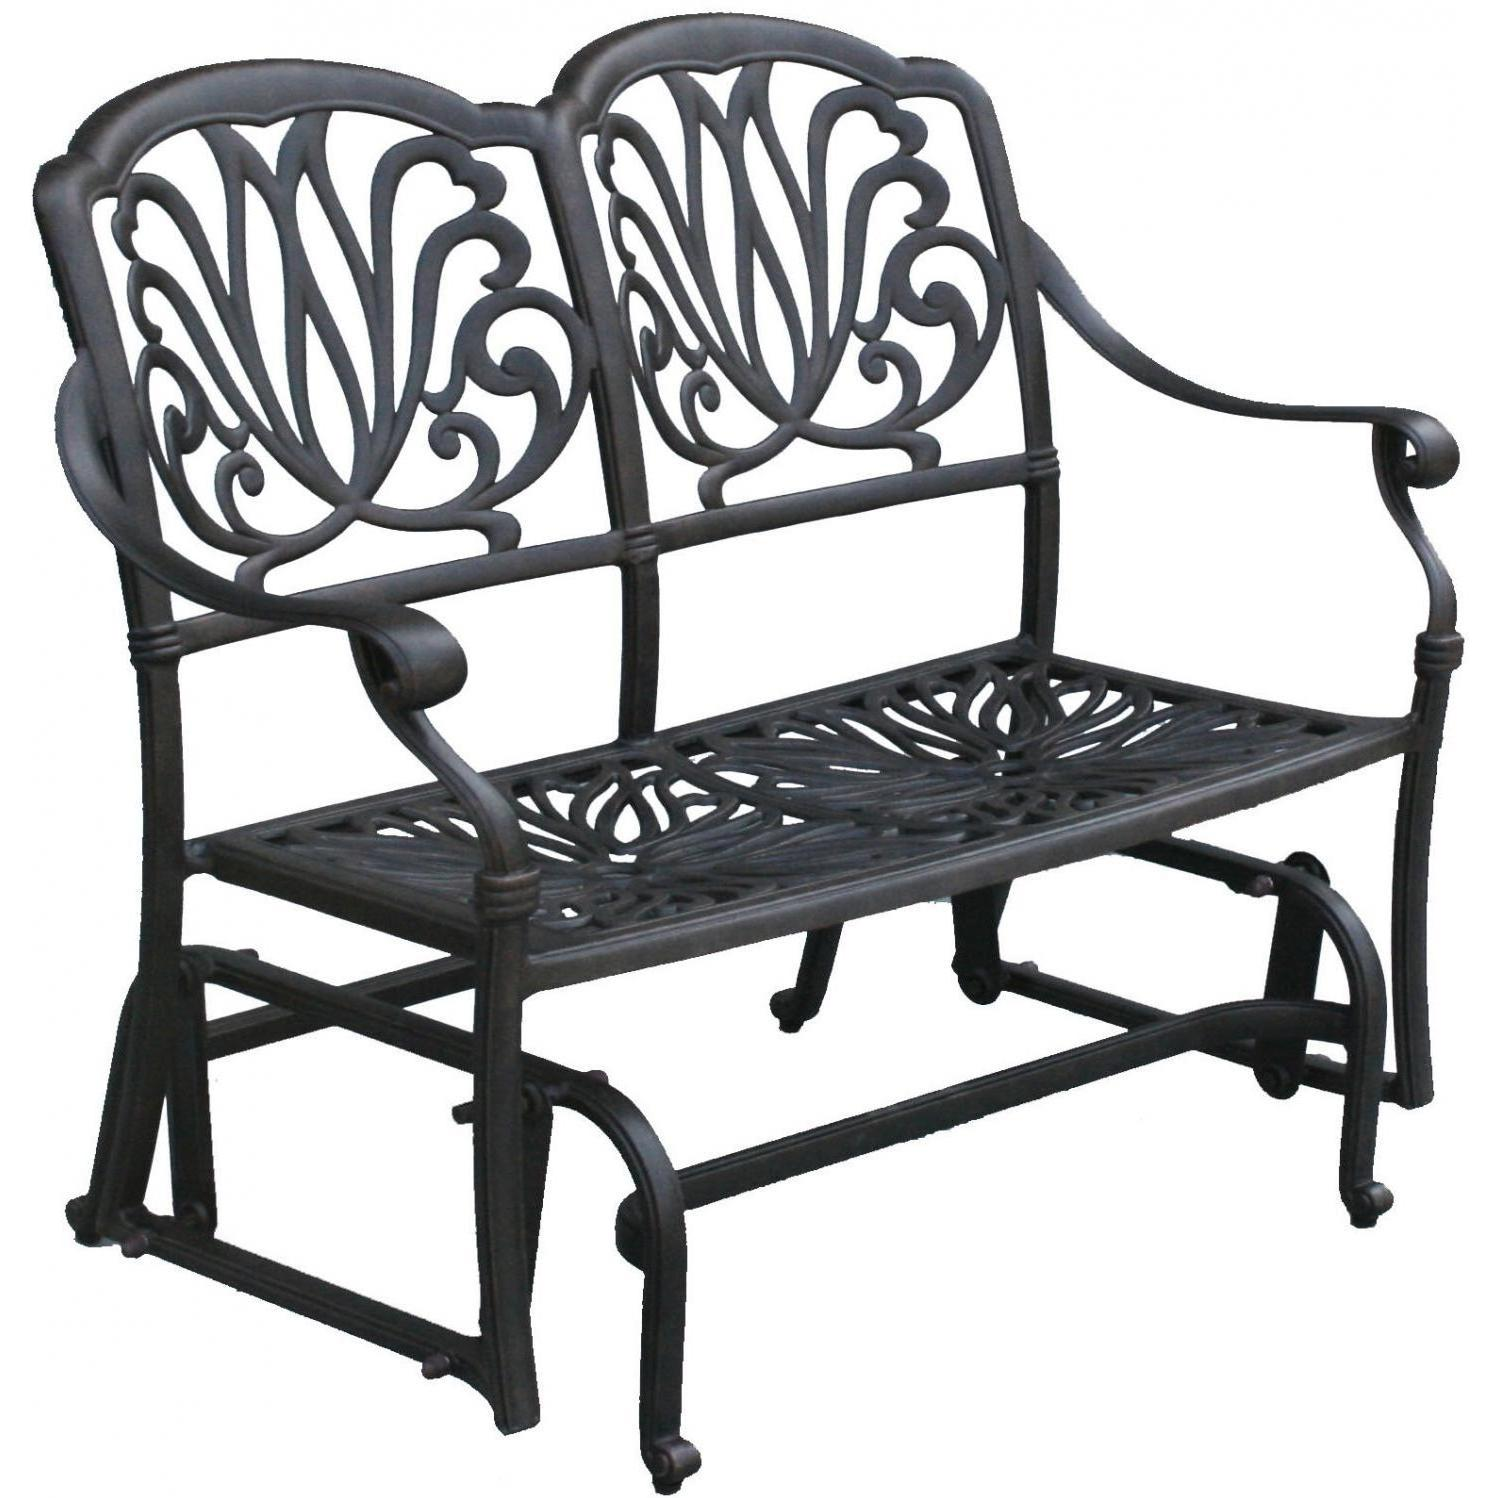 Miraculous Darlee Elisabeth Cast Aluminum Patio Bench Glider Dl709 2 Forskolin Free Trial Chair Design Images Forskolin Free Trialorg